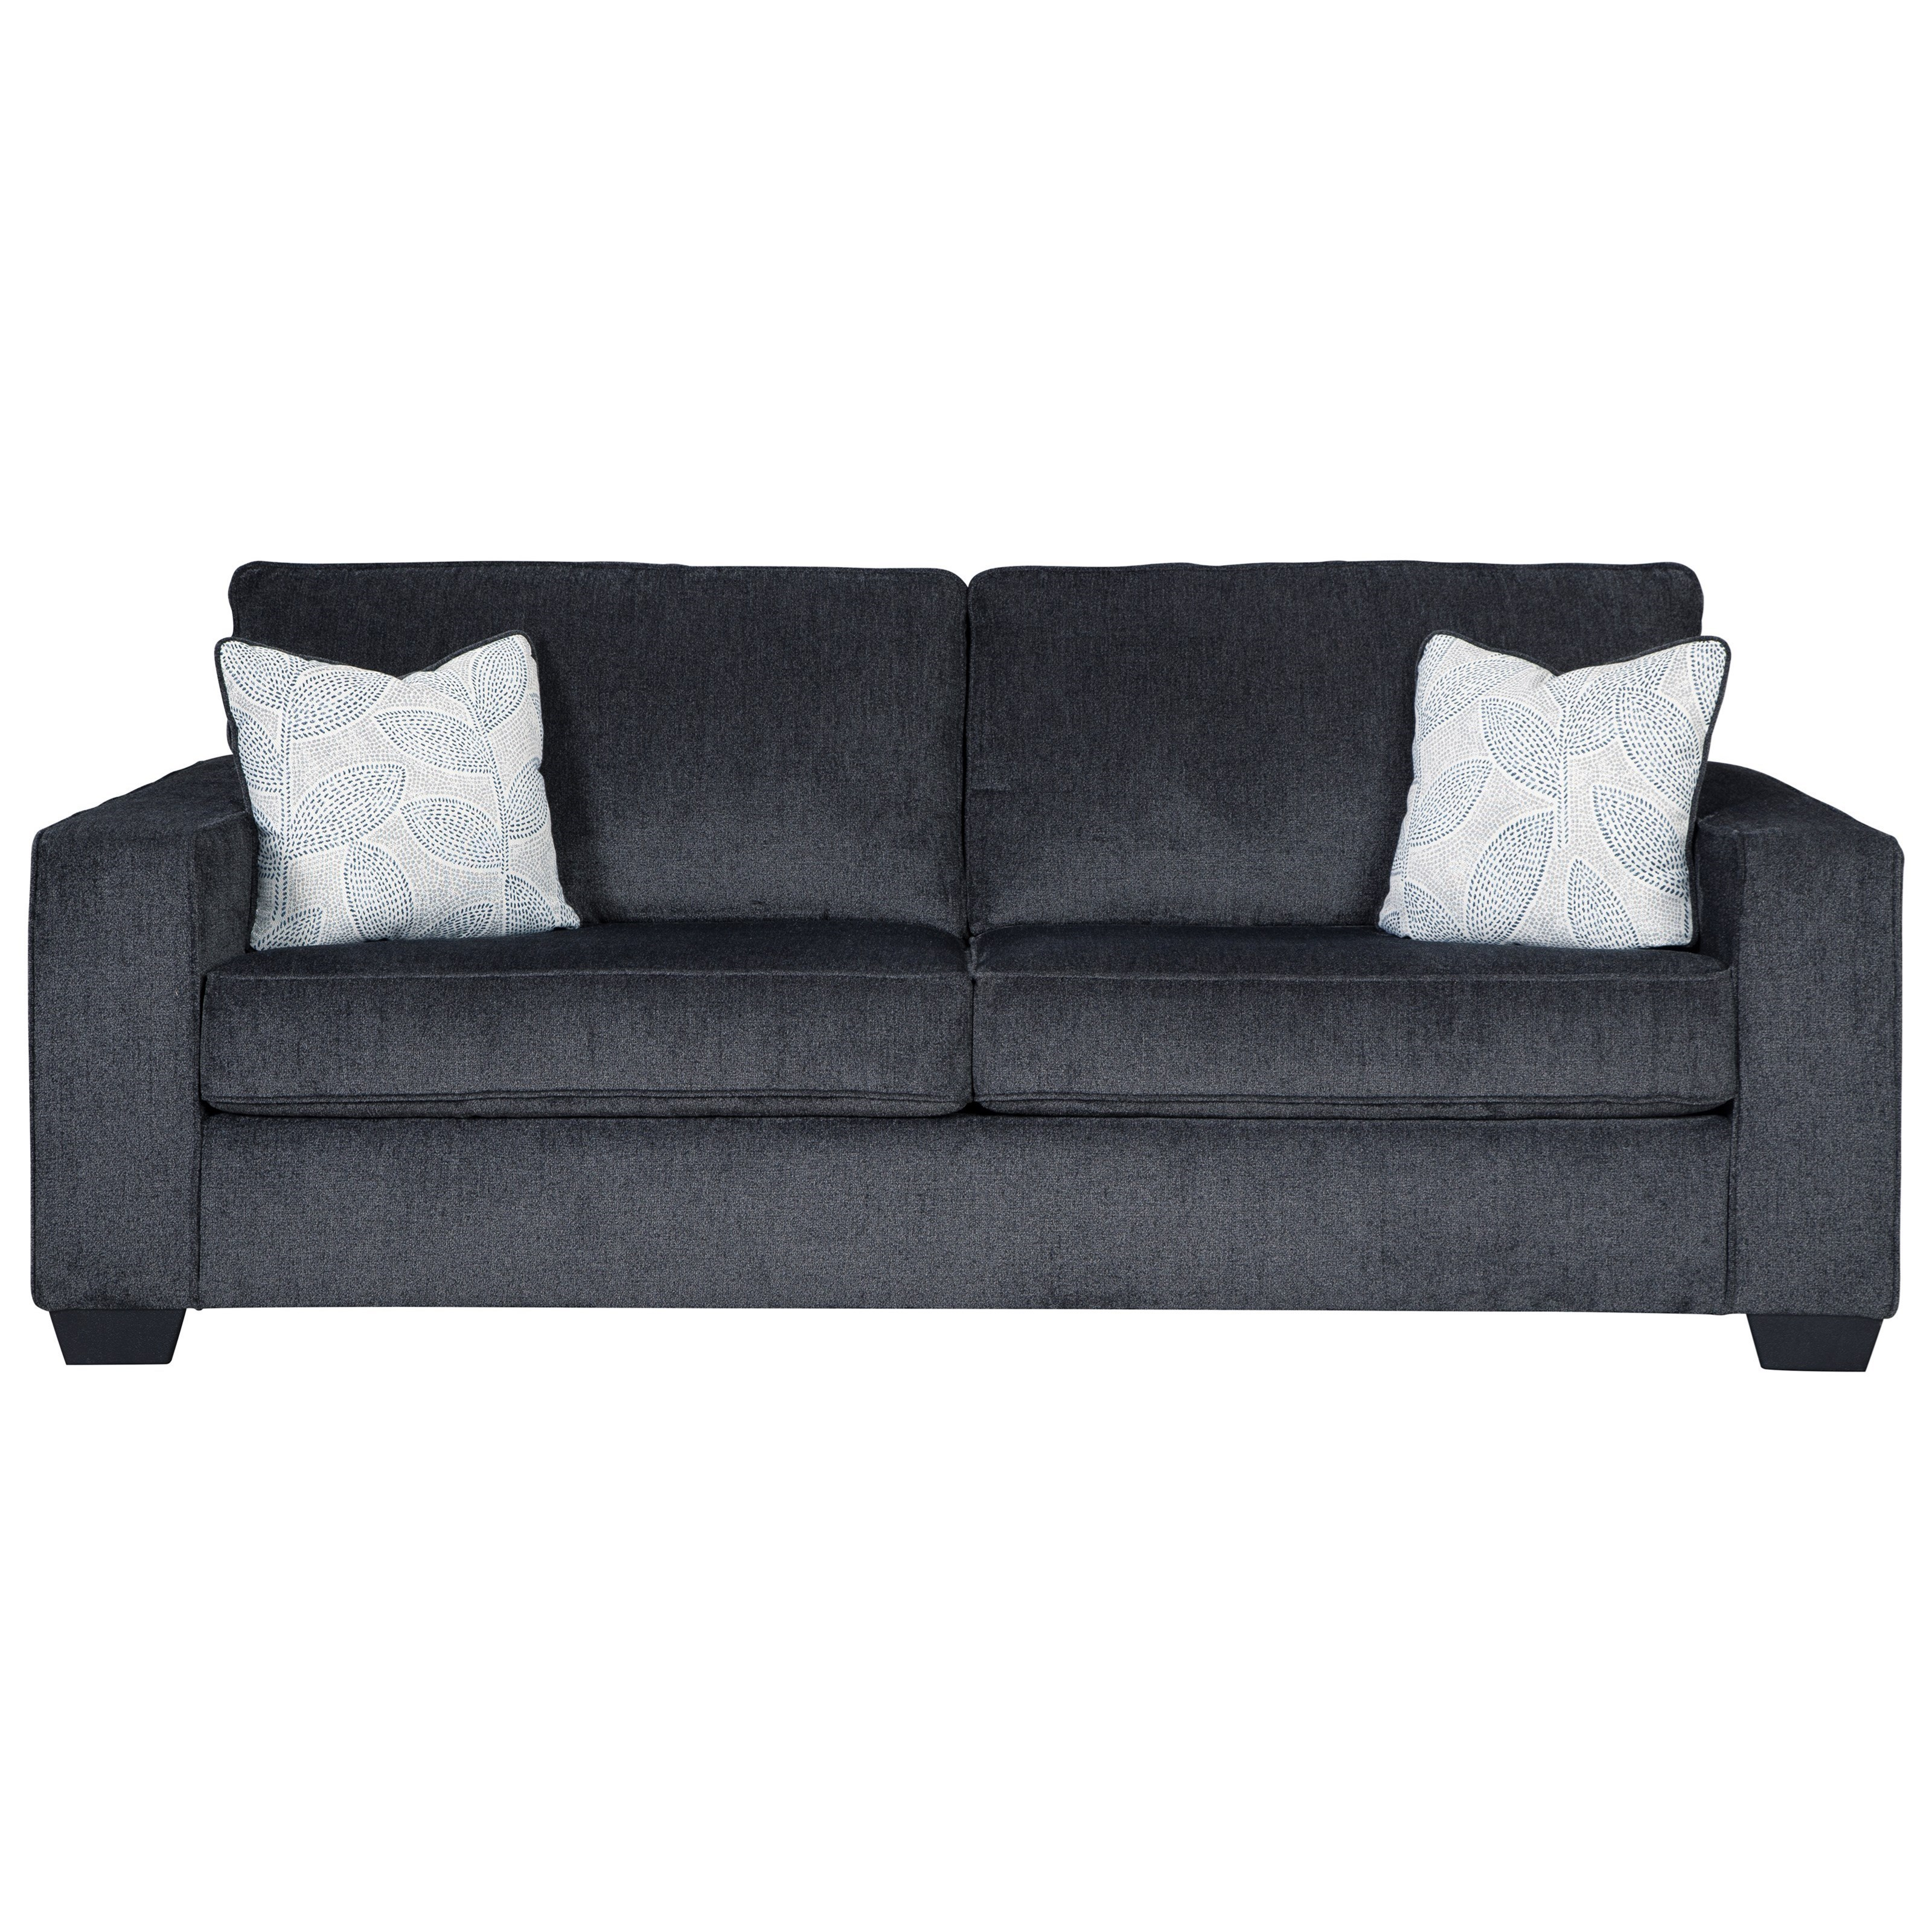 Signature Design by Ashley Altari Queen Sofa Sleeper with Memory